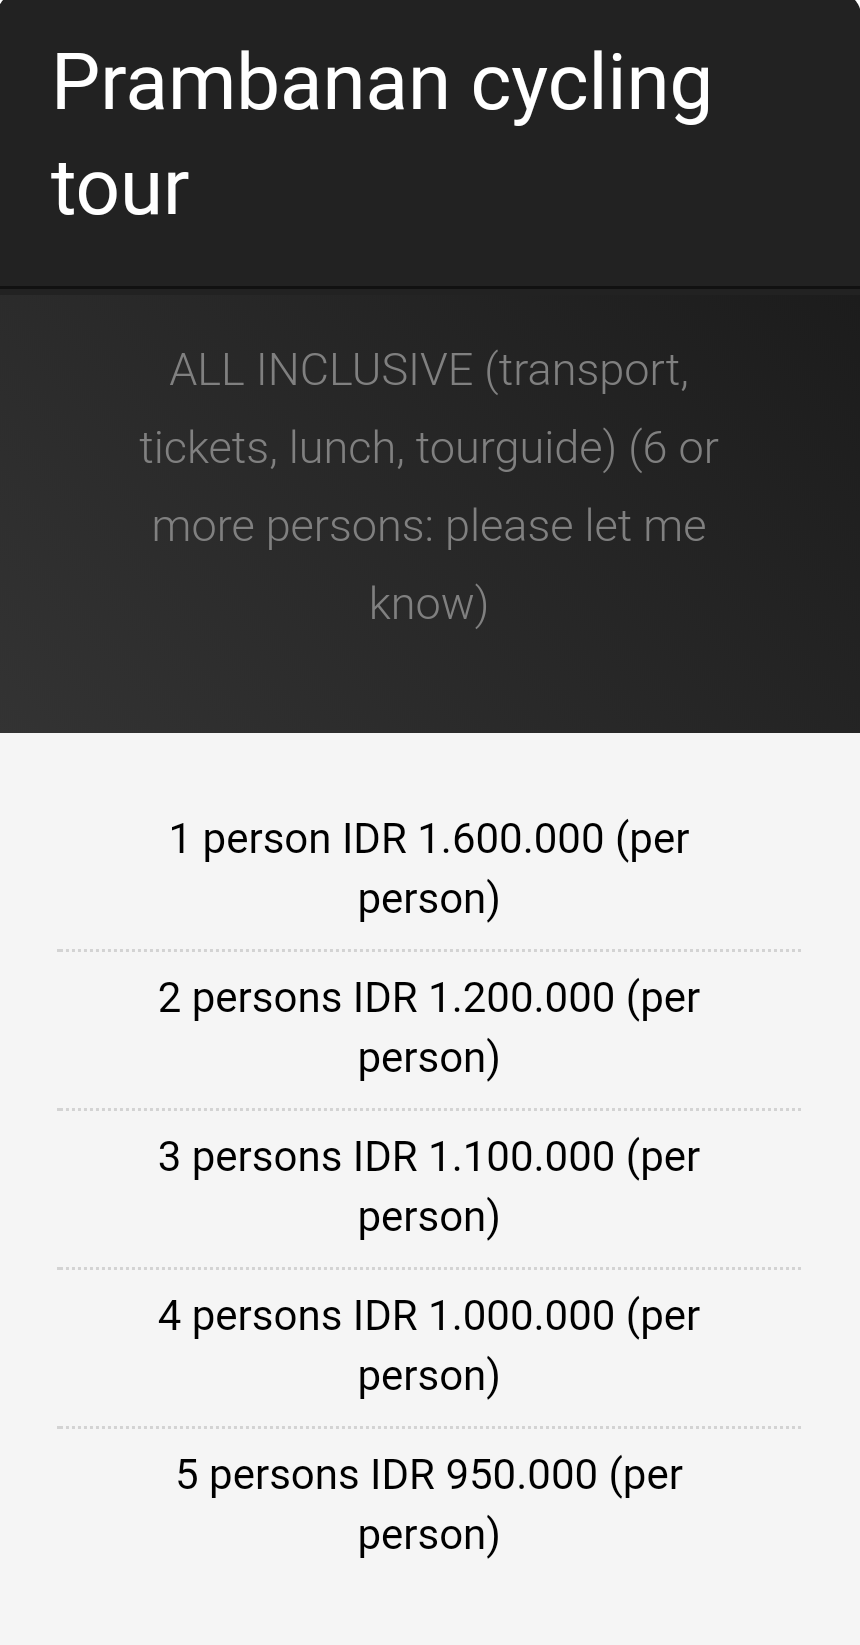 prambanan cycling tour price costs